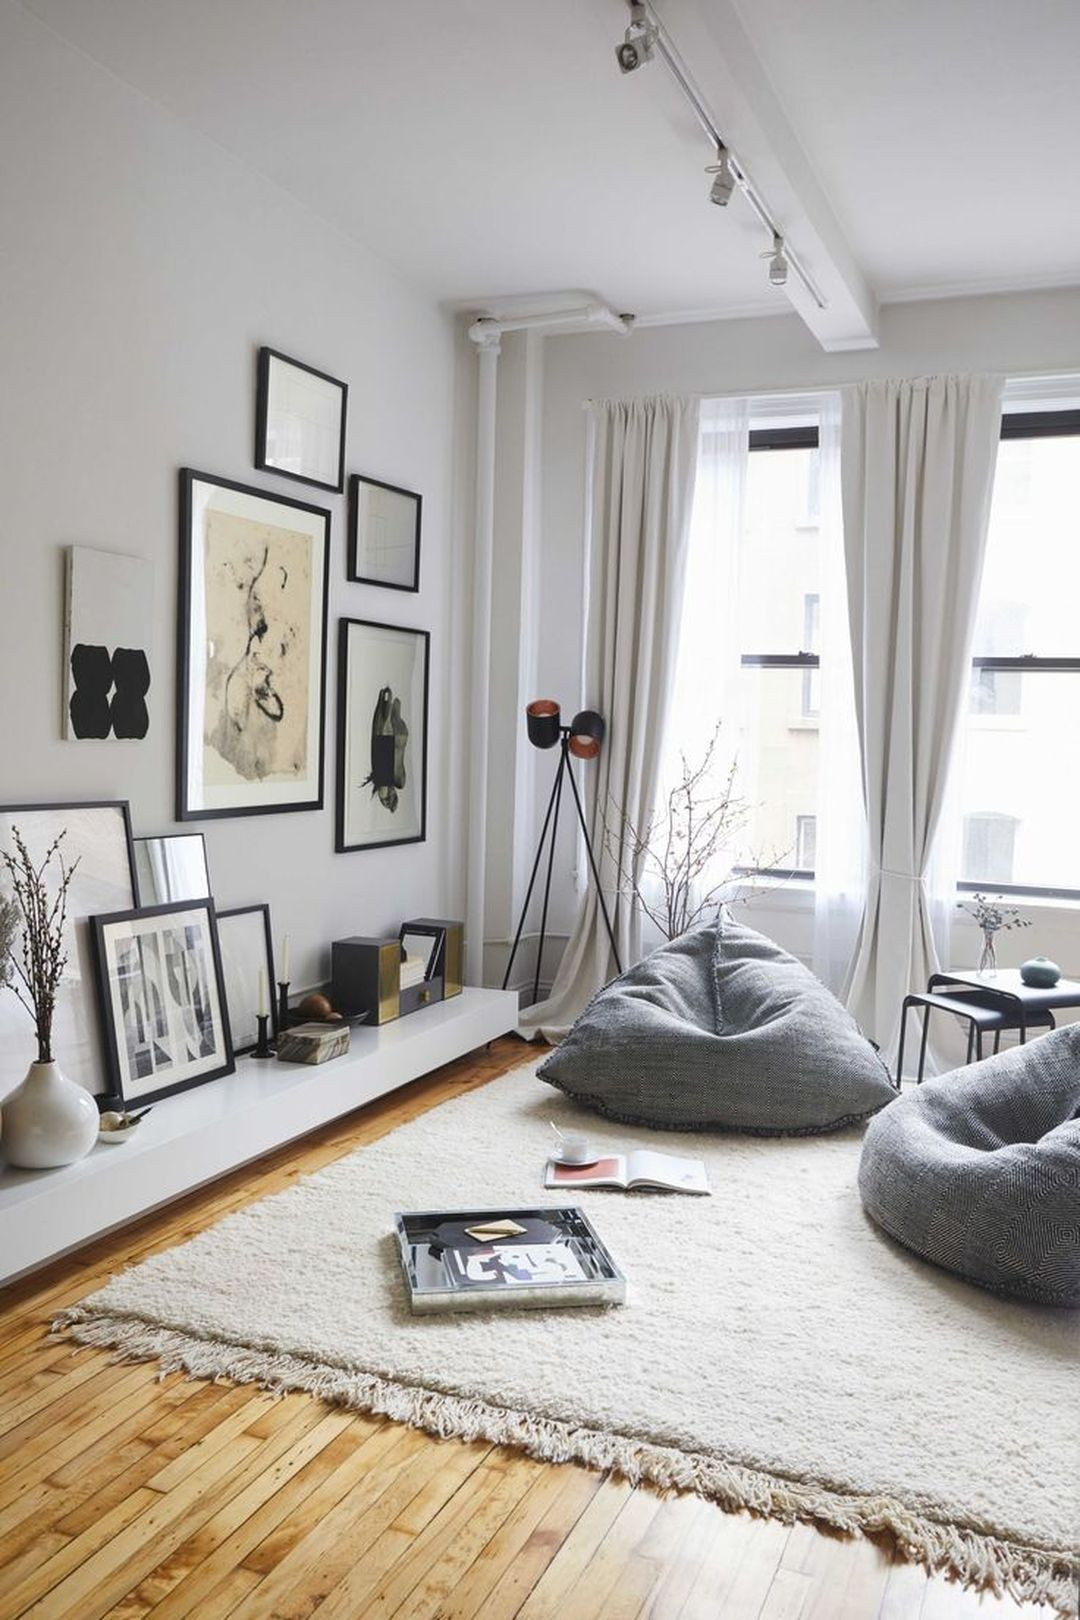 17 Fetching Apartment Aesthetic Decor That Is Dazzling Apartment